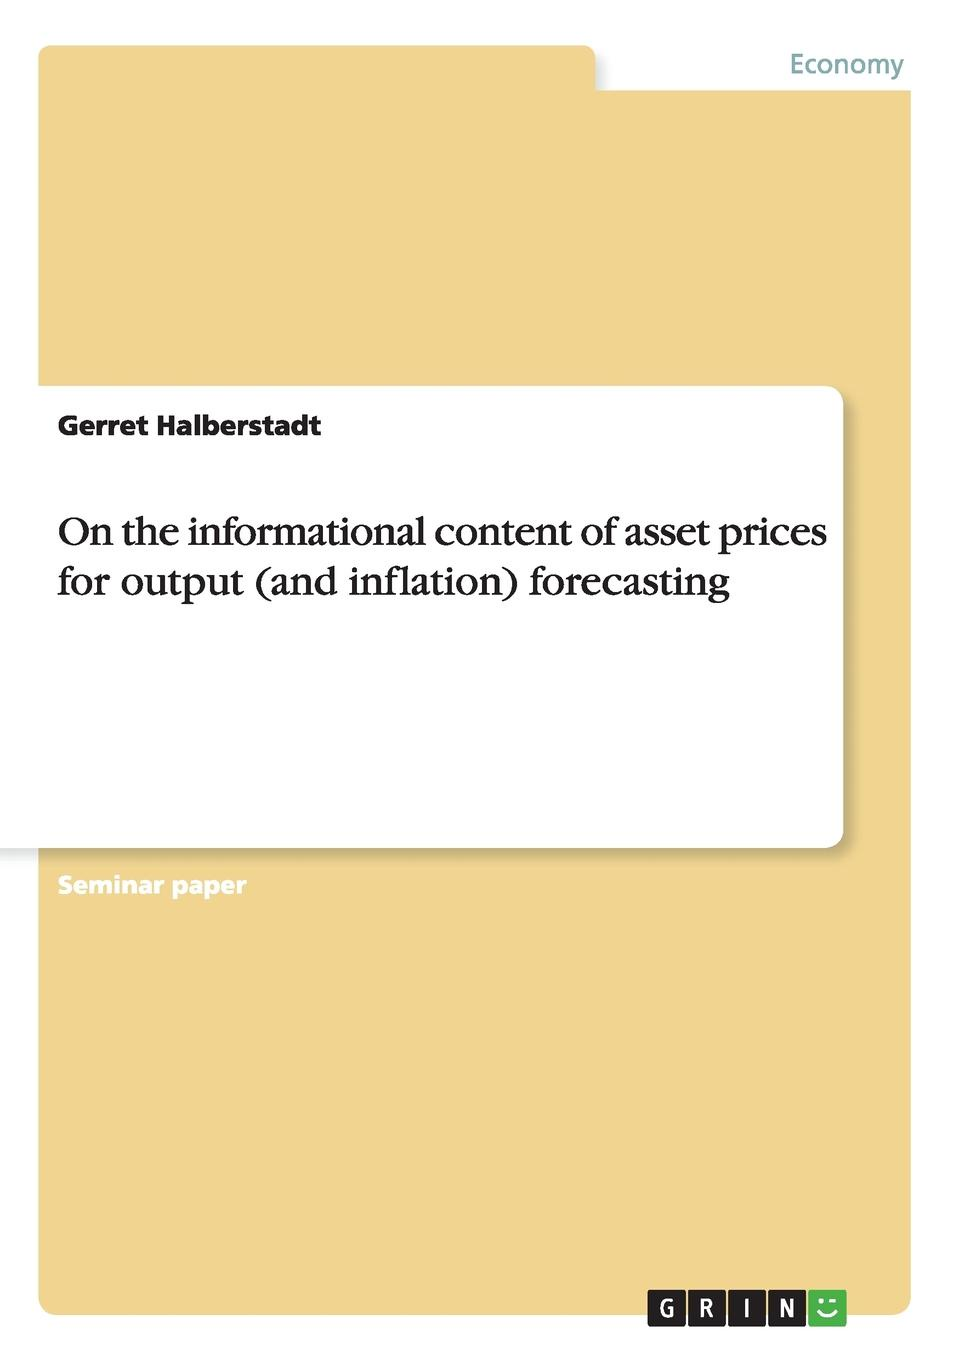 Gerret Halberstadt On the informational content of asset prices for output (and inflation) forecasting assessment of interest rates in see countries during crisis